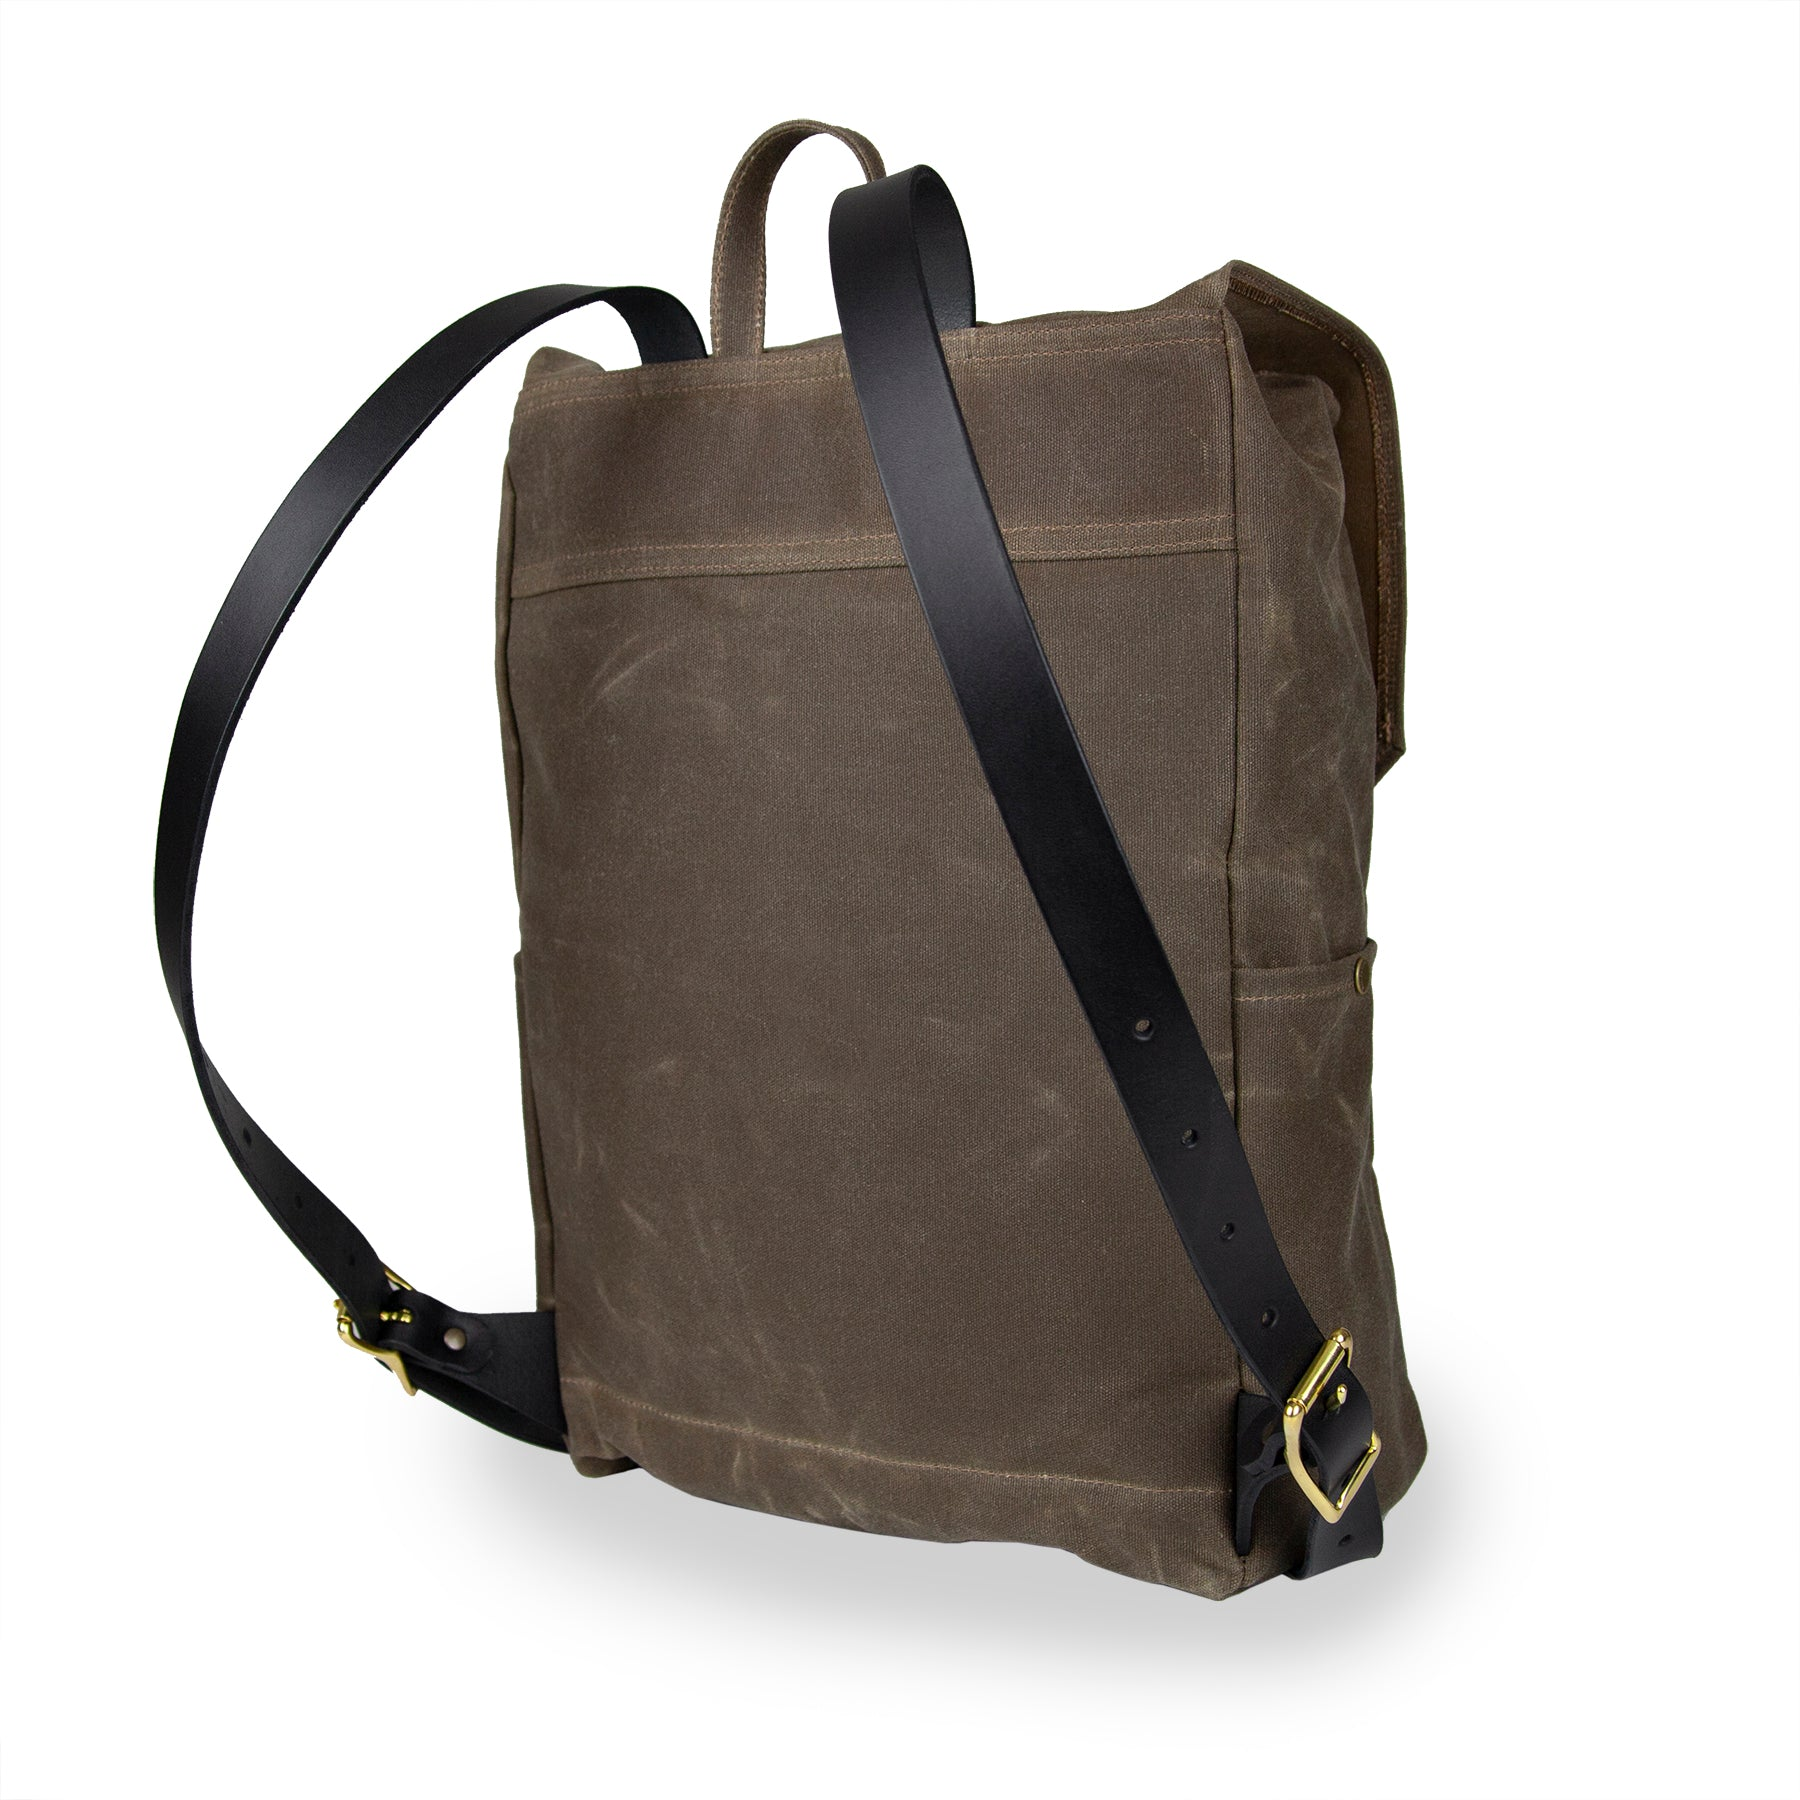 Day Tripper Backpack - Field Tan with Black Leather